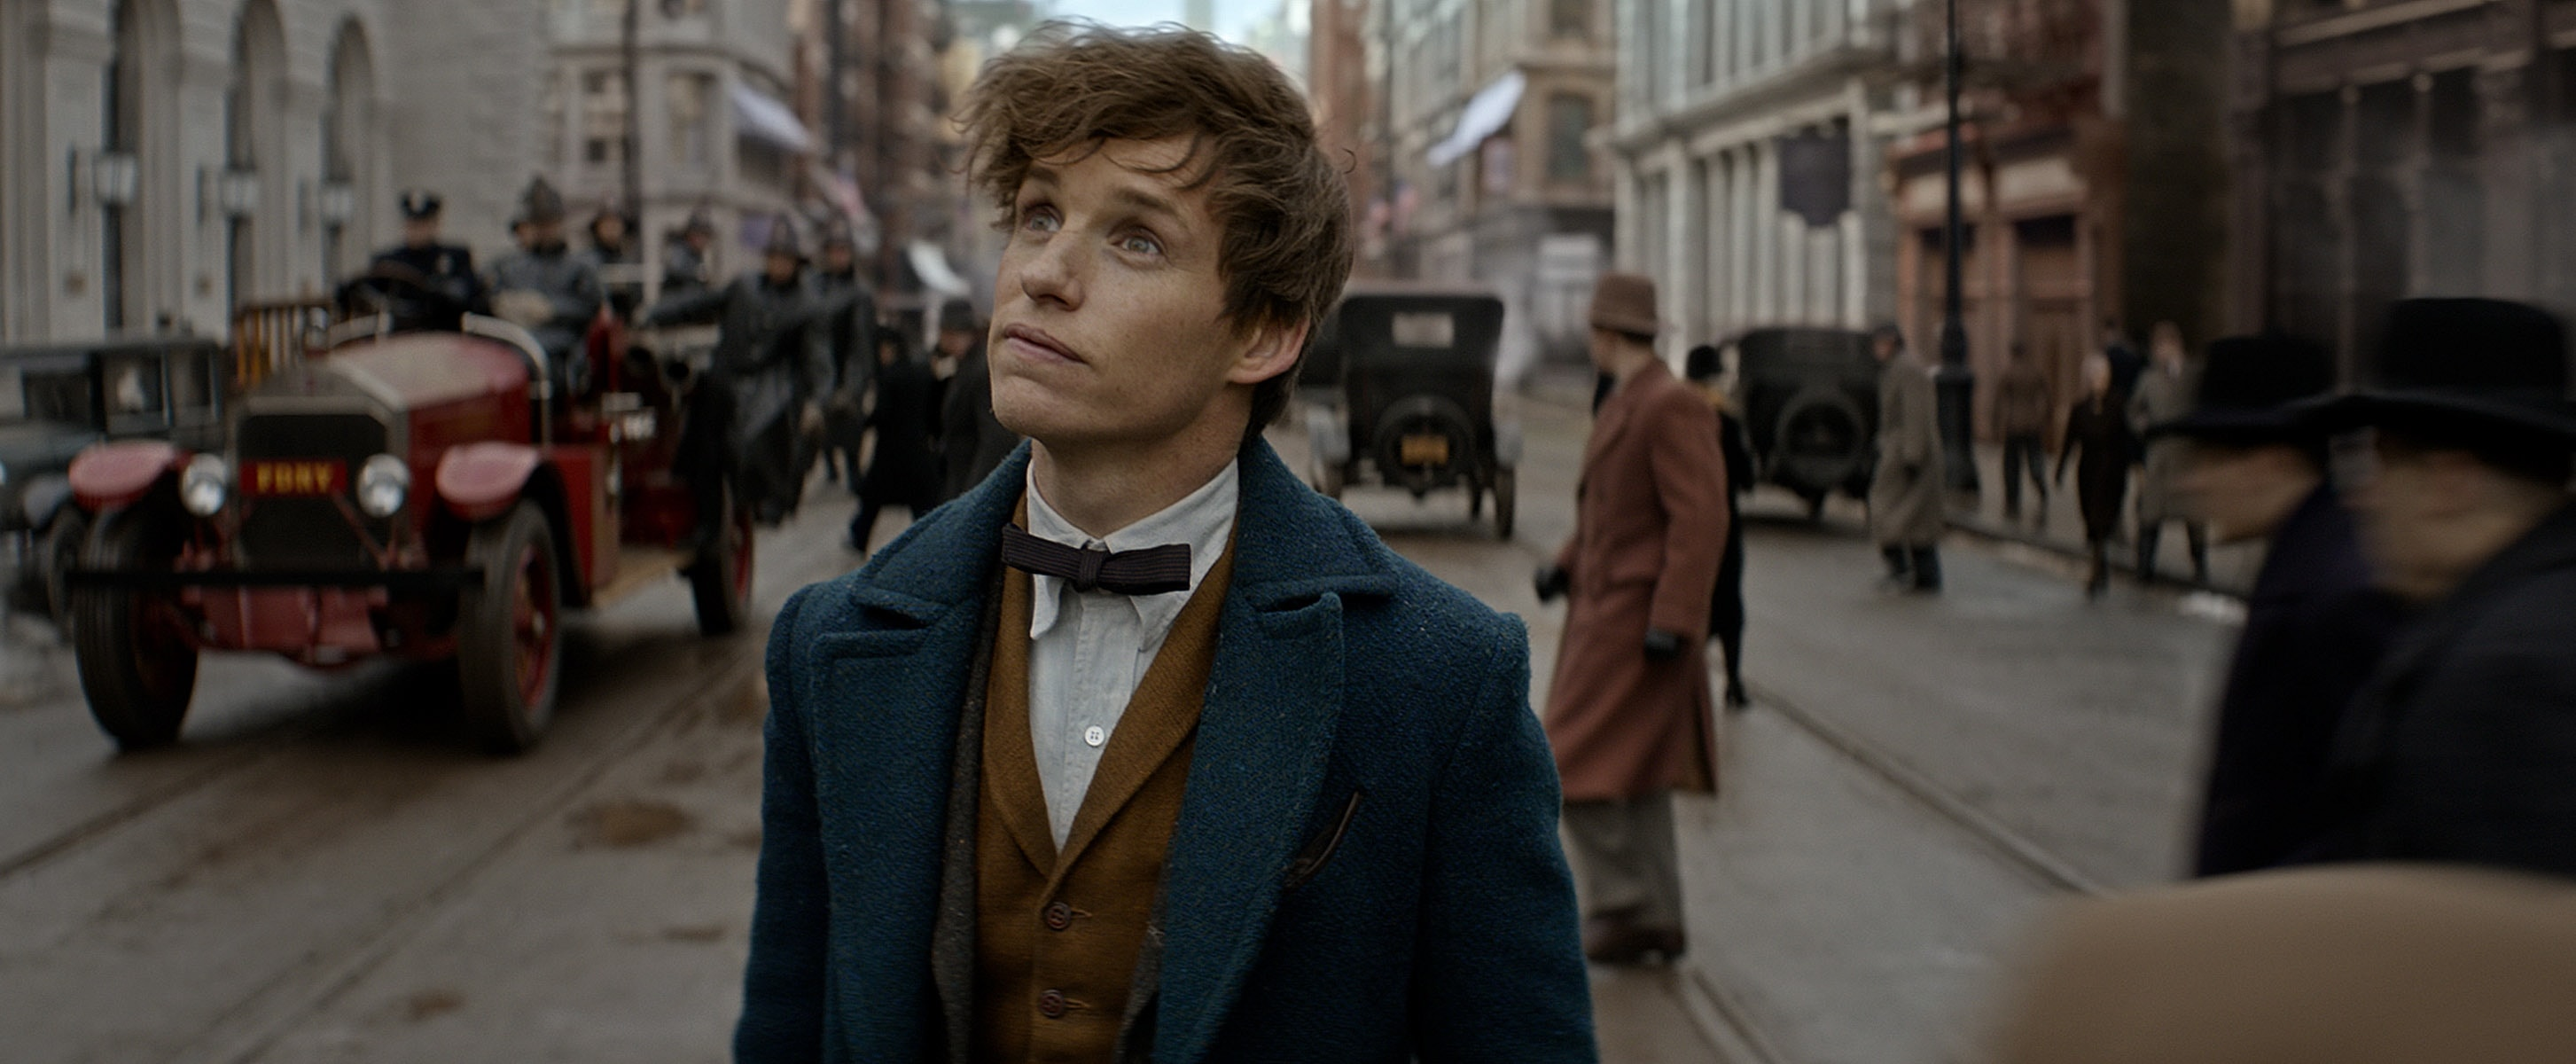 Fantastic Beasts and Where to Find Them Quality desktop